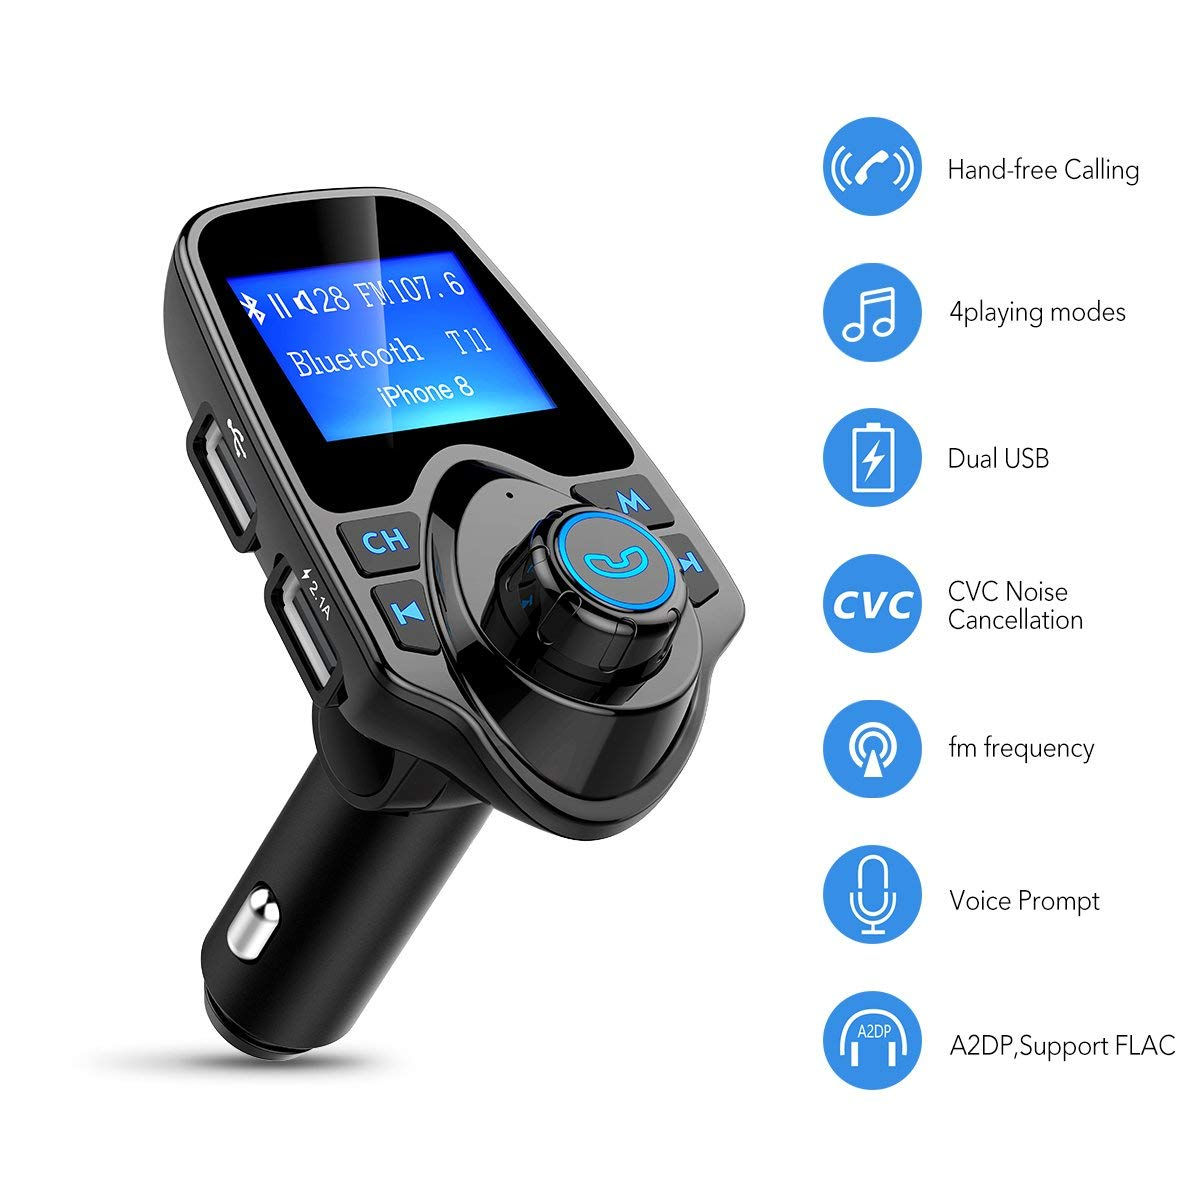 new styles 71d0c 83f11 US $18.04 5% OFF|Bluetooth FM Transmitter Wireless in Car Radio Receiver  Adapter, Handsfree Car Kit Music Player with 2 USB Ports AUX in/Out TF-in  FM ...